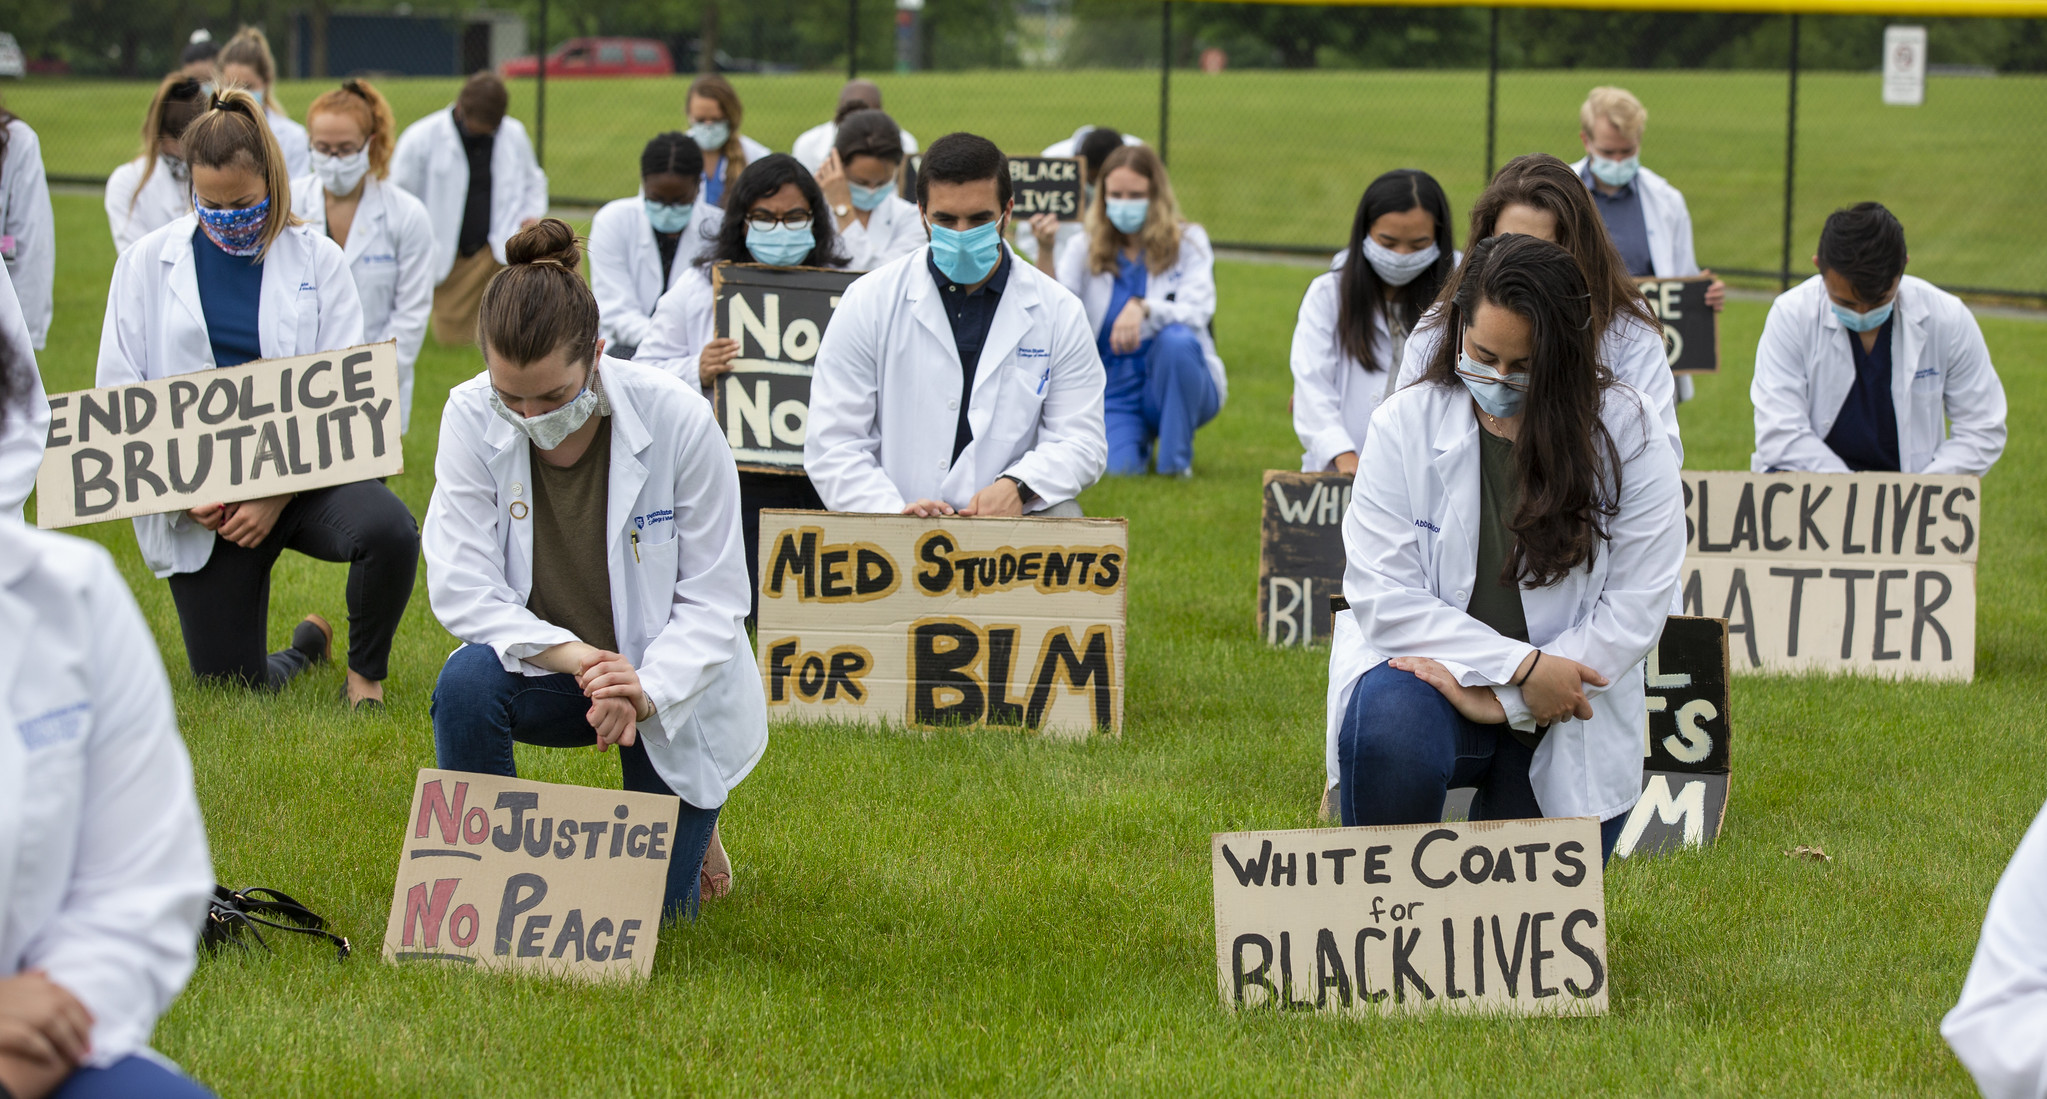 A group of people are seen spaced apart, kneeling on a green lawn. They hold signs with statements such as White Coats for Black Lives, No Justice No Peace, End Police Brutality, Black Lives Matter and Med Students for BLM.